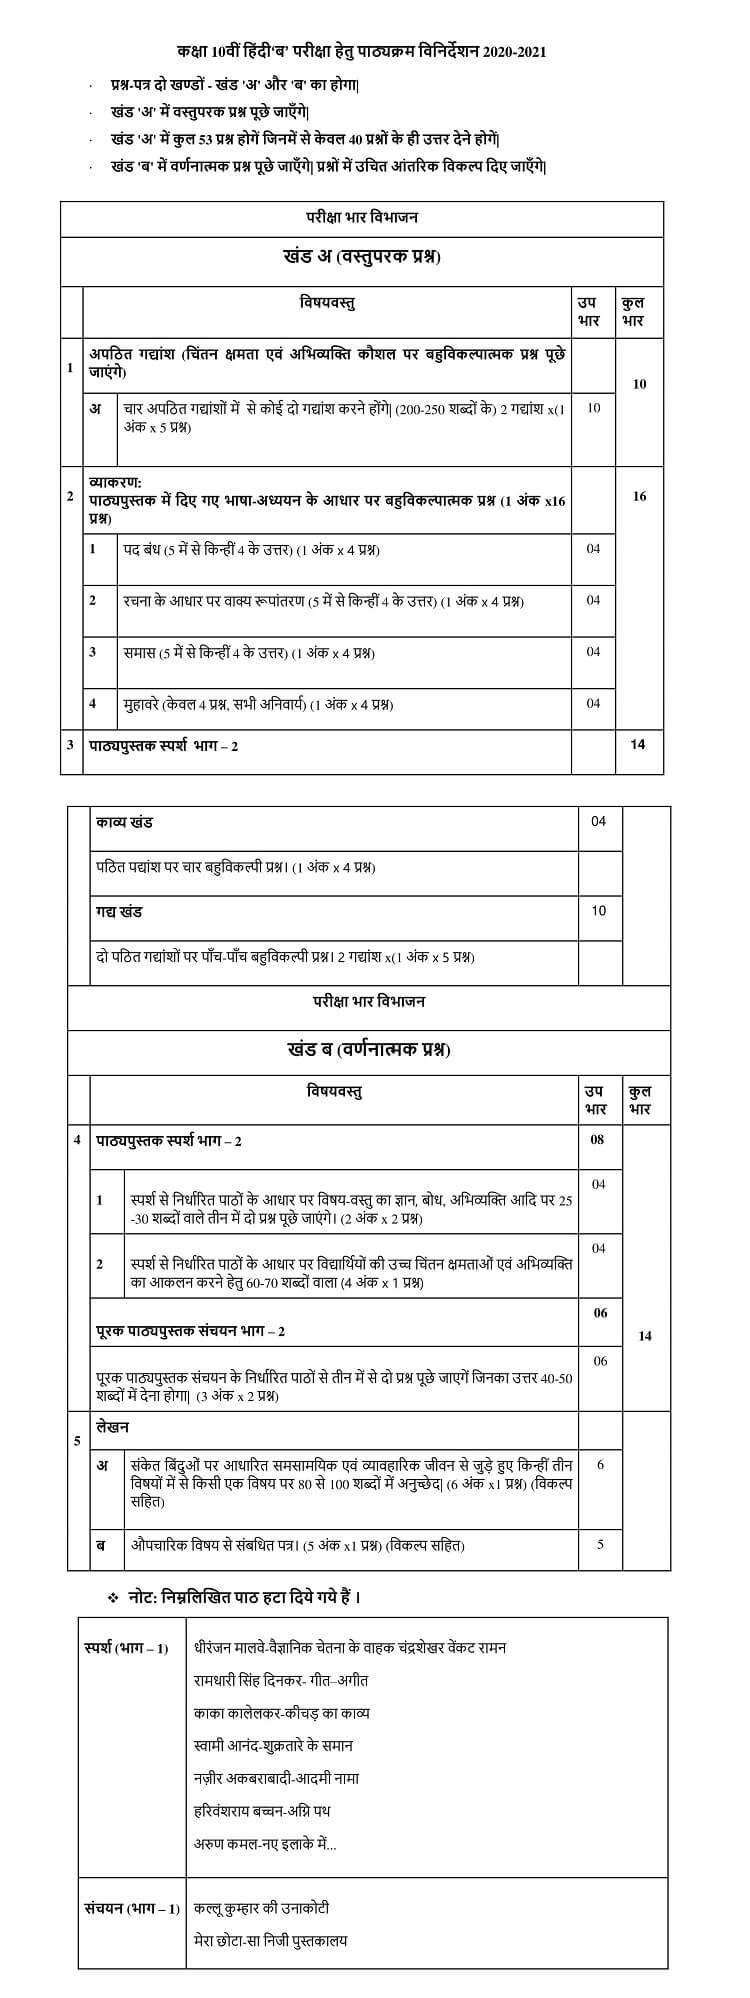 Revised CBSE Class 10 Syllabus for Hindi Course - B